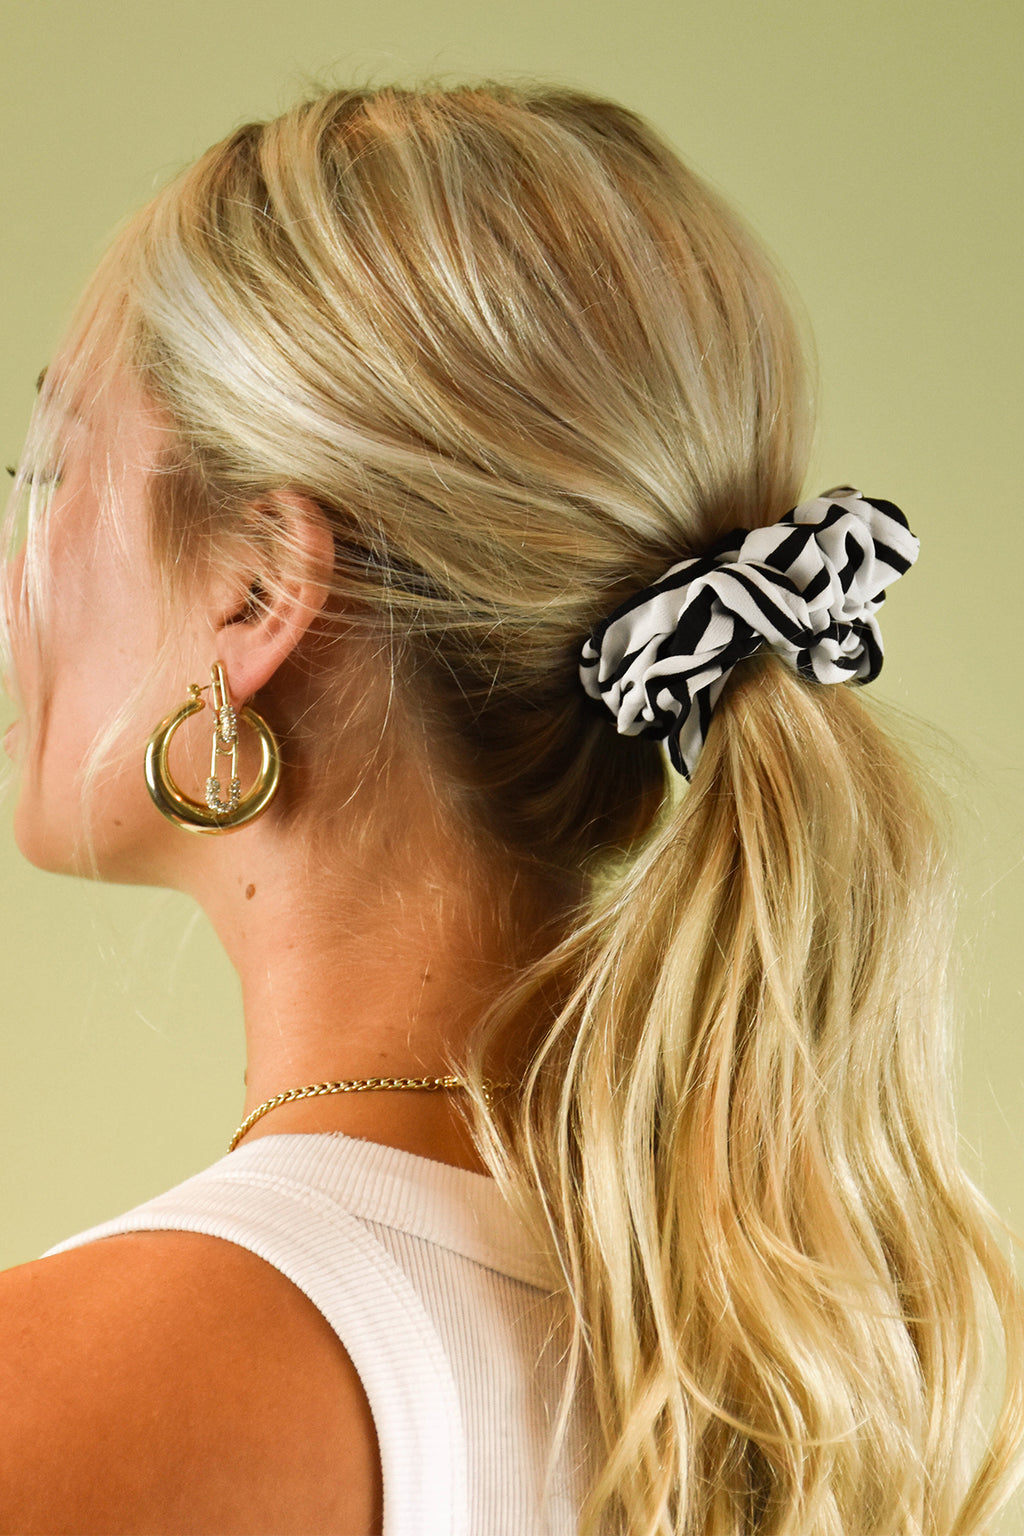 Into The Wild Zebra Scrunchie